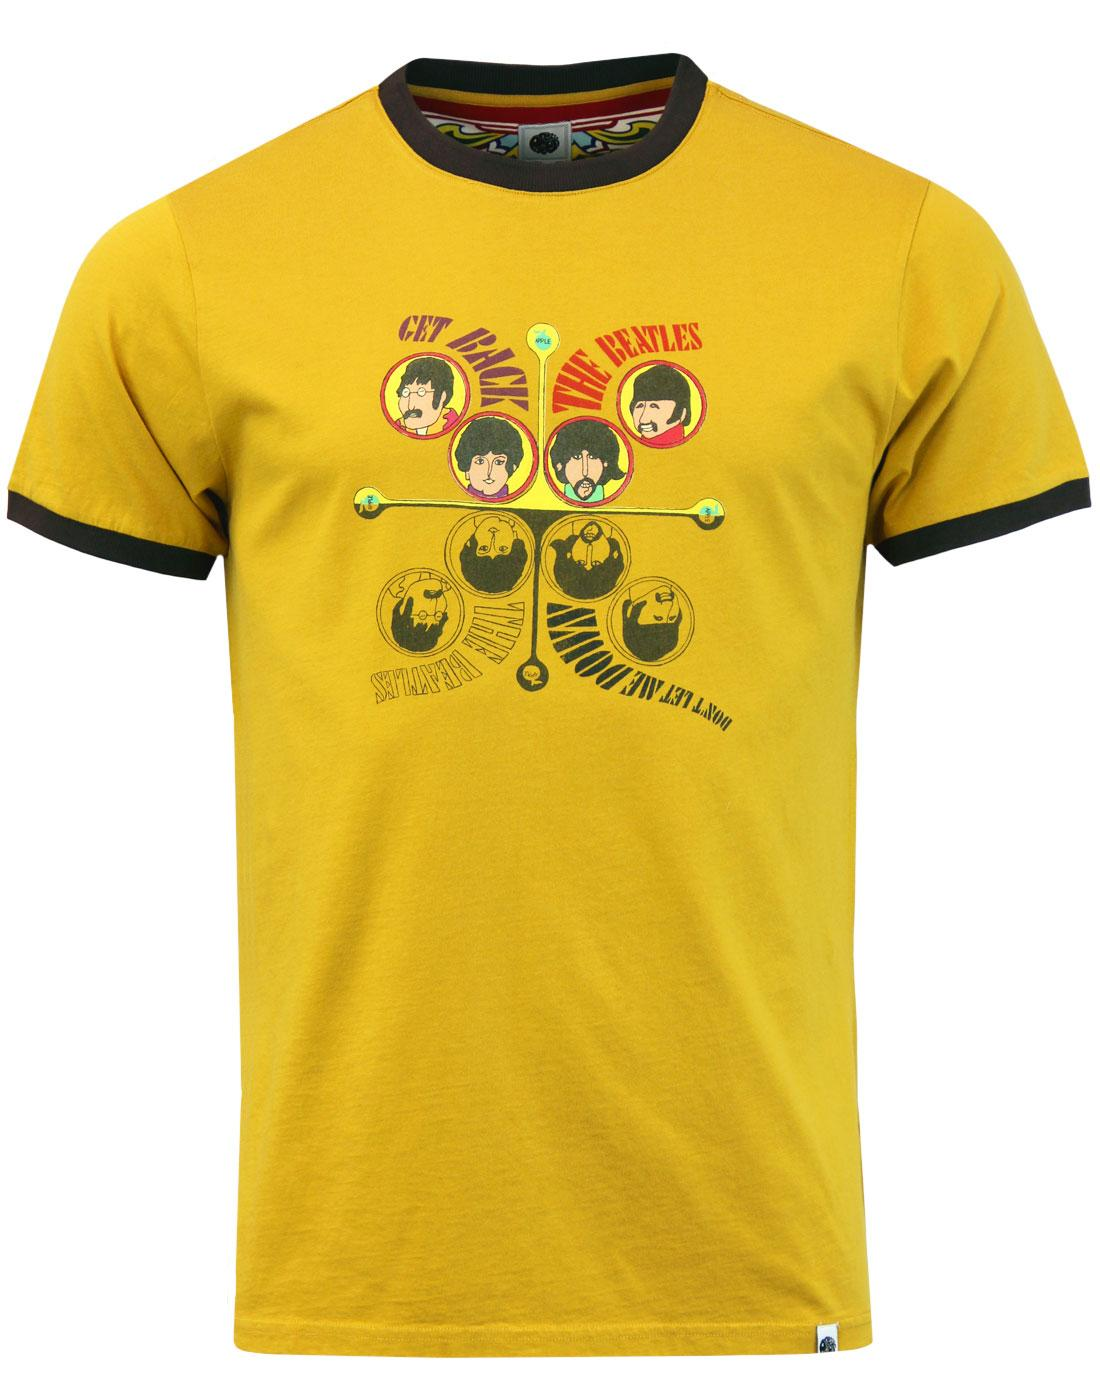 finest selection 0e75a ad101 PRETTY GREEN x THE BEATLES Get Back Retro T-Shirt